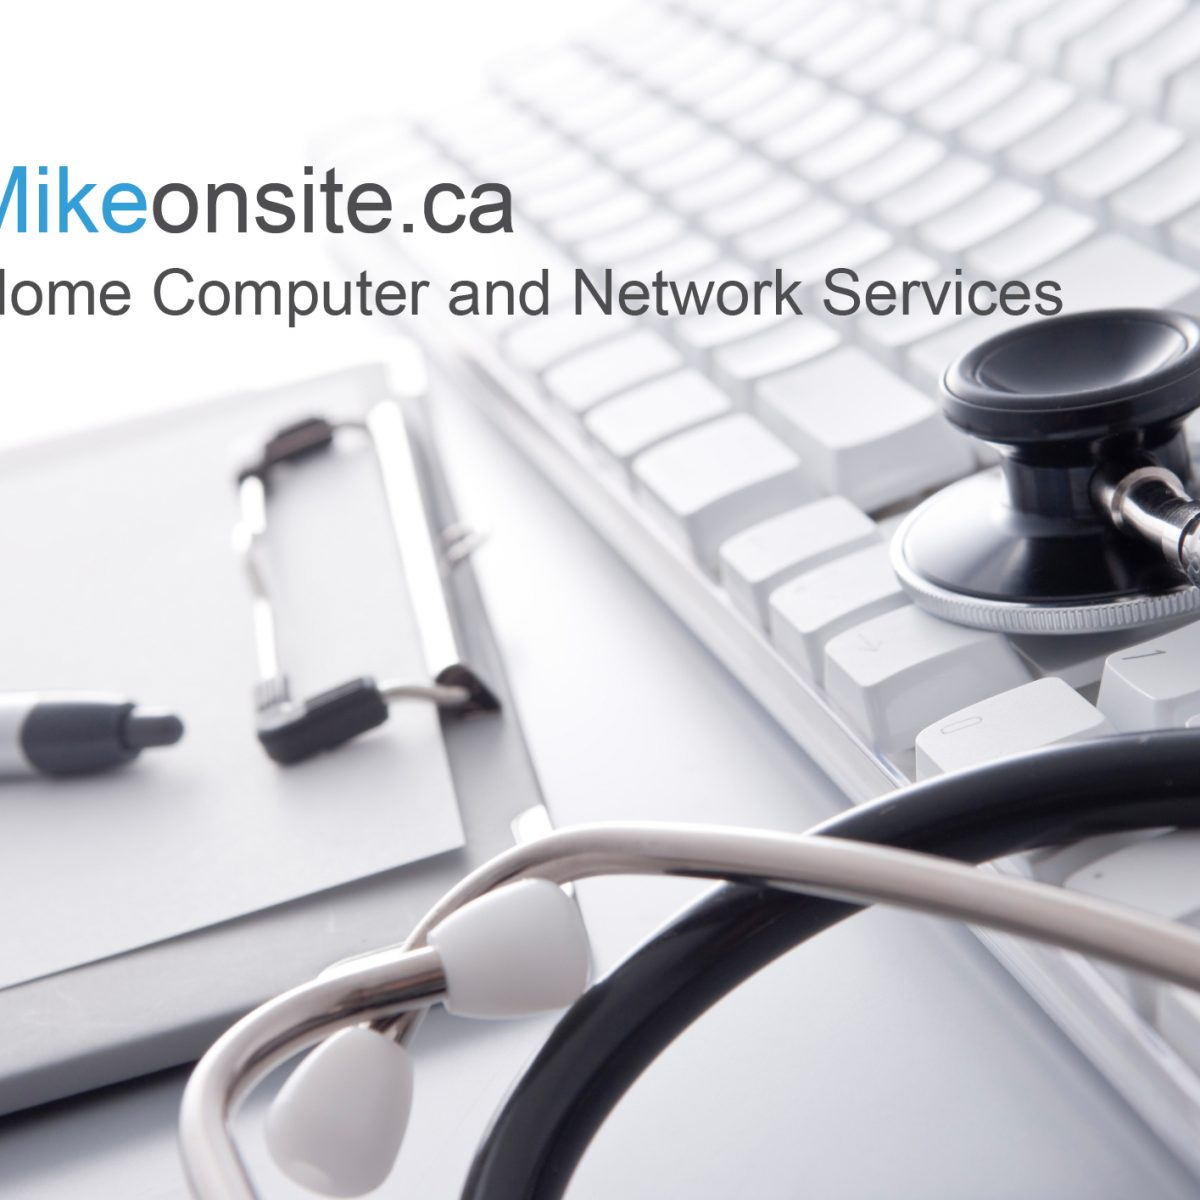 Mikeonsite.ca - Home Computer and Network Services